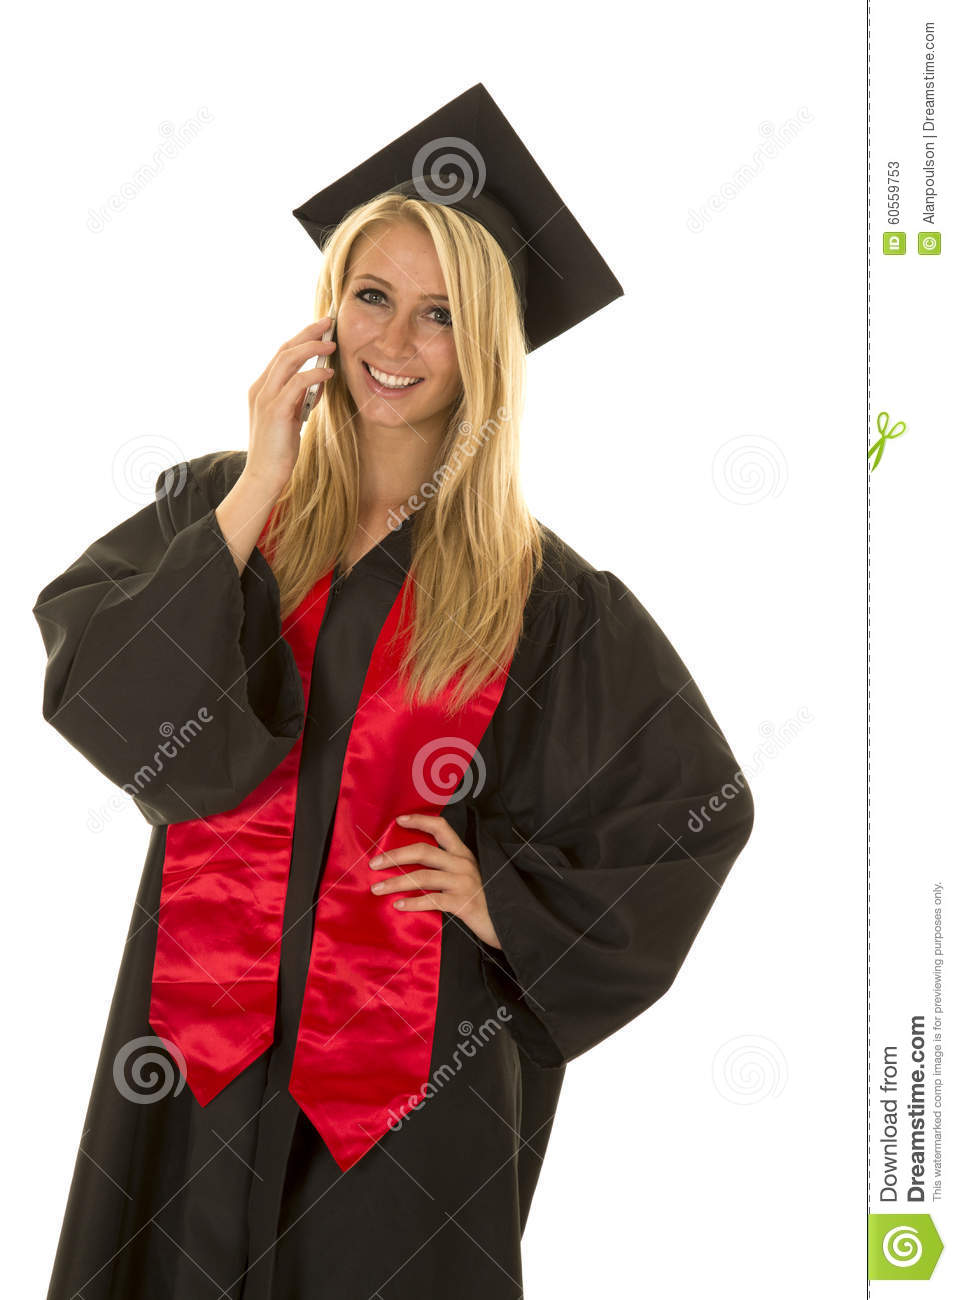 Woman In Black Graduation Gown Talk On Phone Smile Stock Image ...